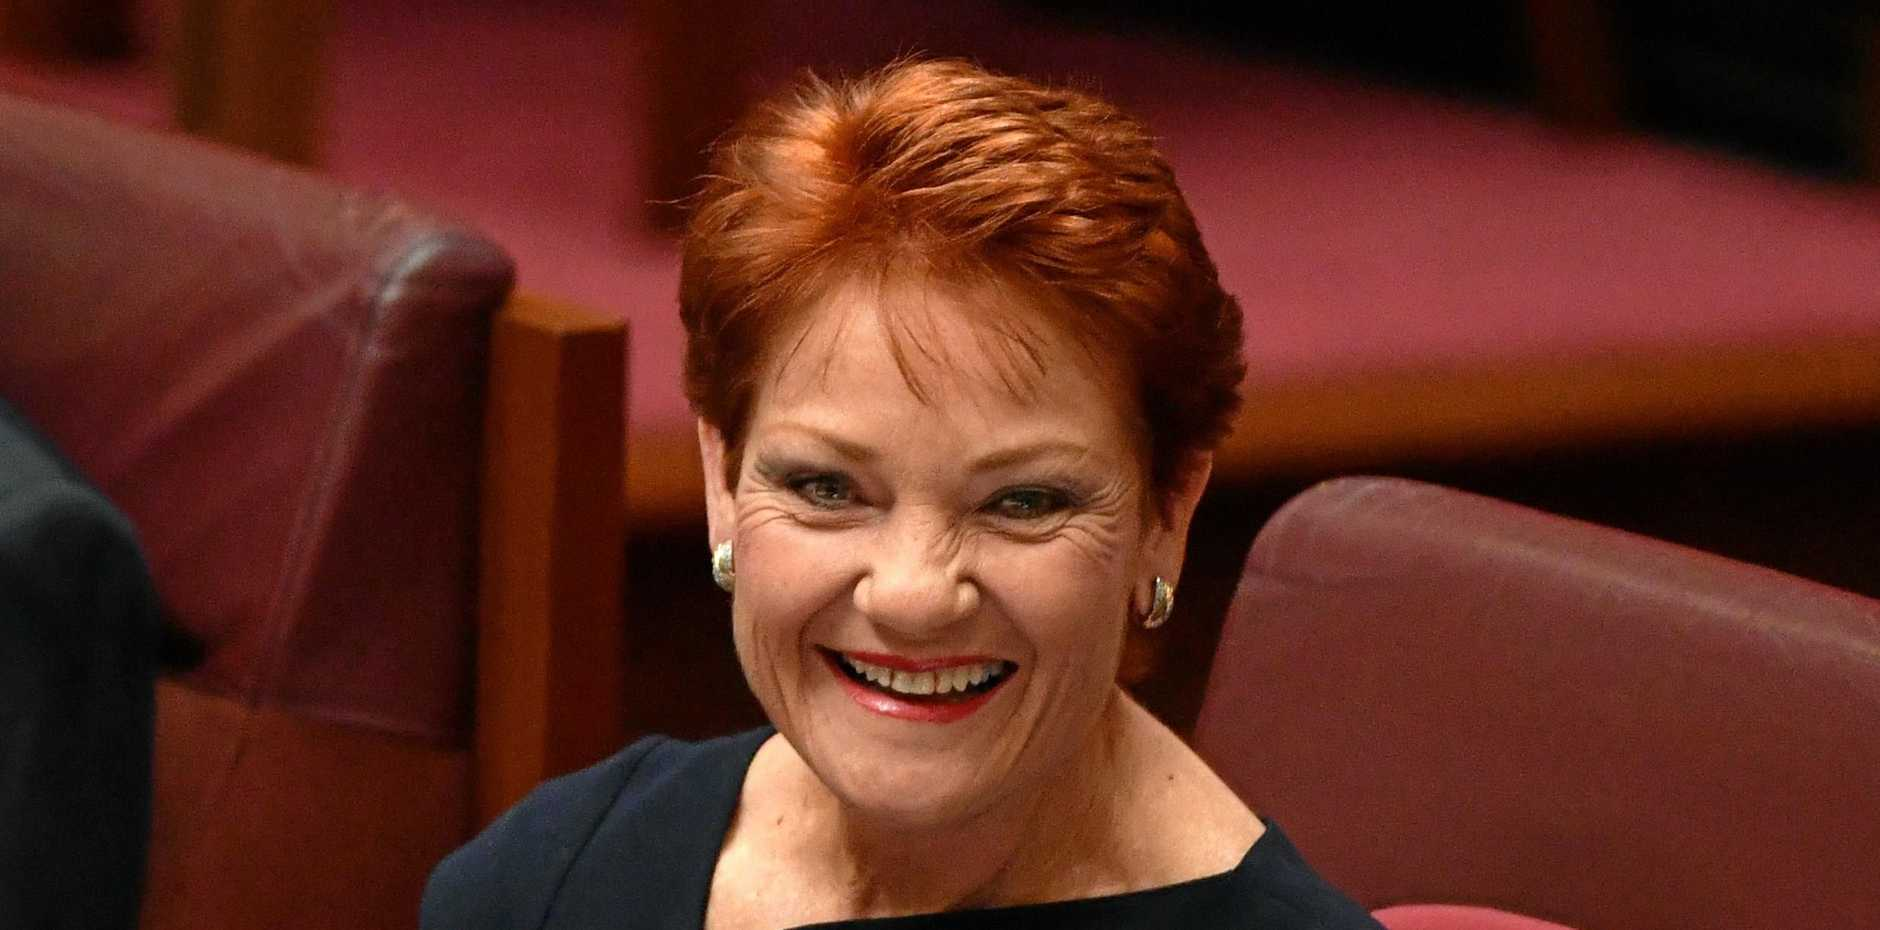 One Nation leader Senator Pauline Hanson in the Senate chamber at Parliament House in Canberra.